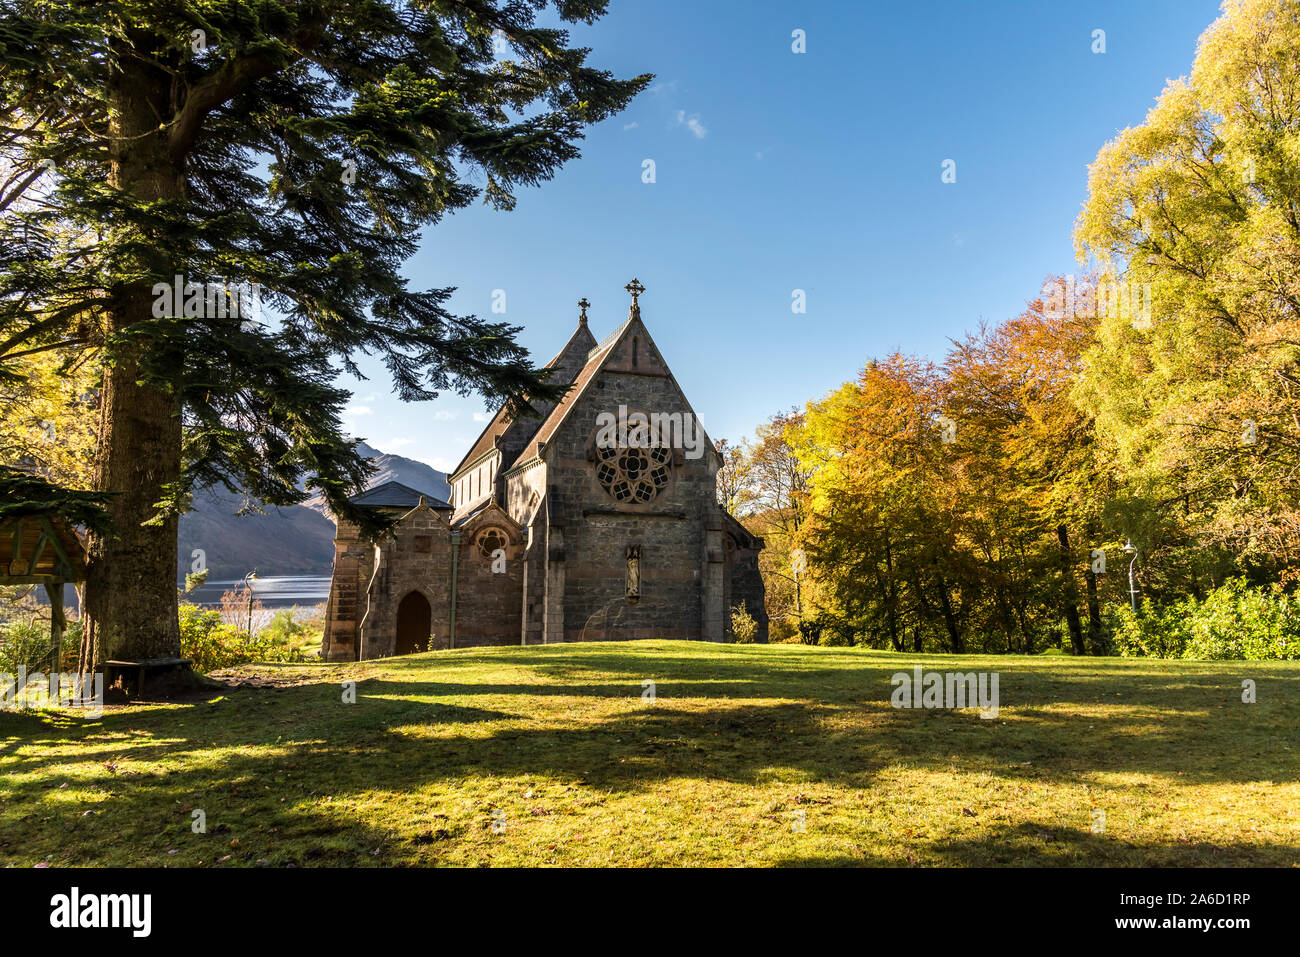 St Mary's Church in autumn colours near Glen Finnan memorial to Bonnie Prince Charlie on the shore of Loch Shiel  in the Western Highlands of Scotland Stock Photo